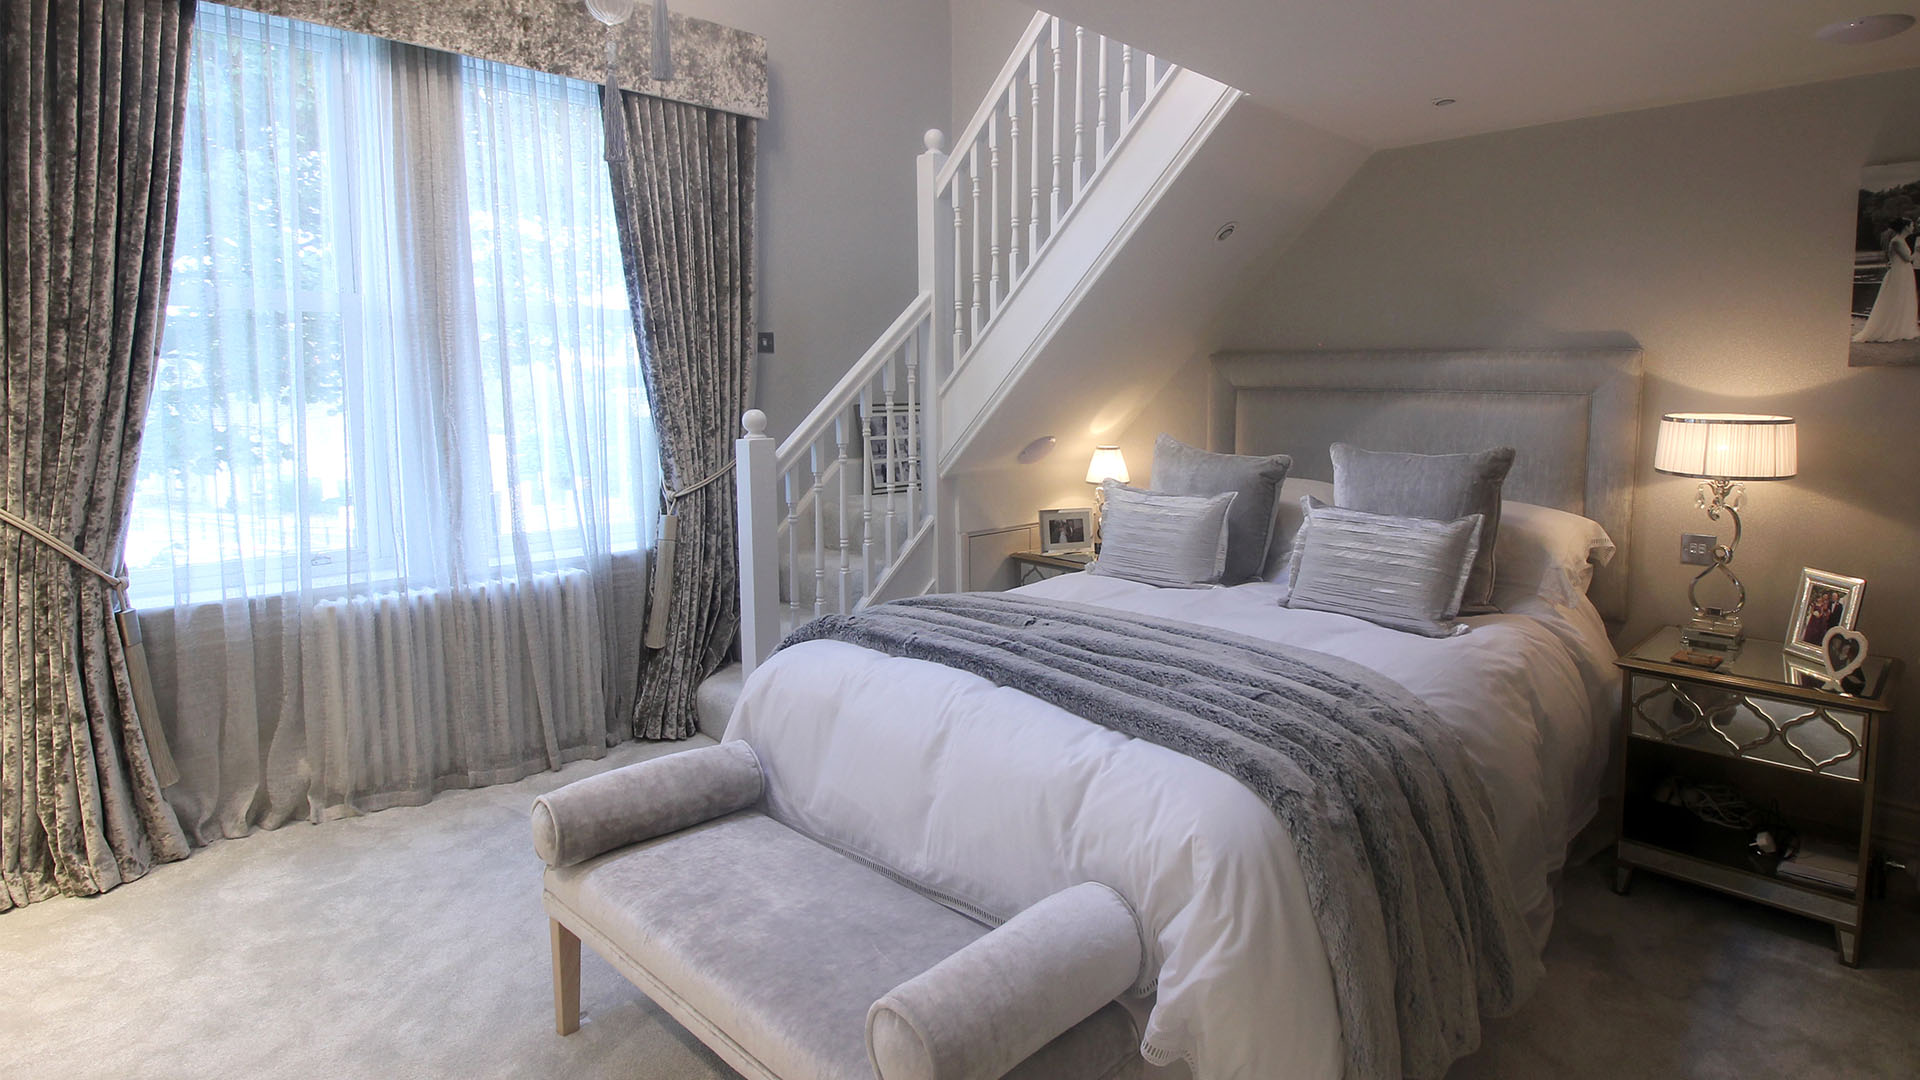 Master bedroom Interior Design by Beckett & Beckett Interiors Leeds